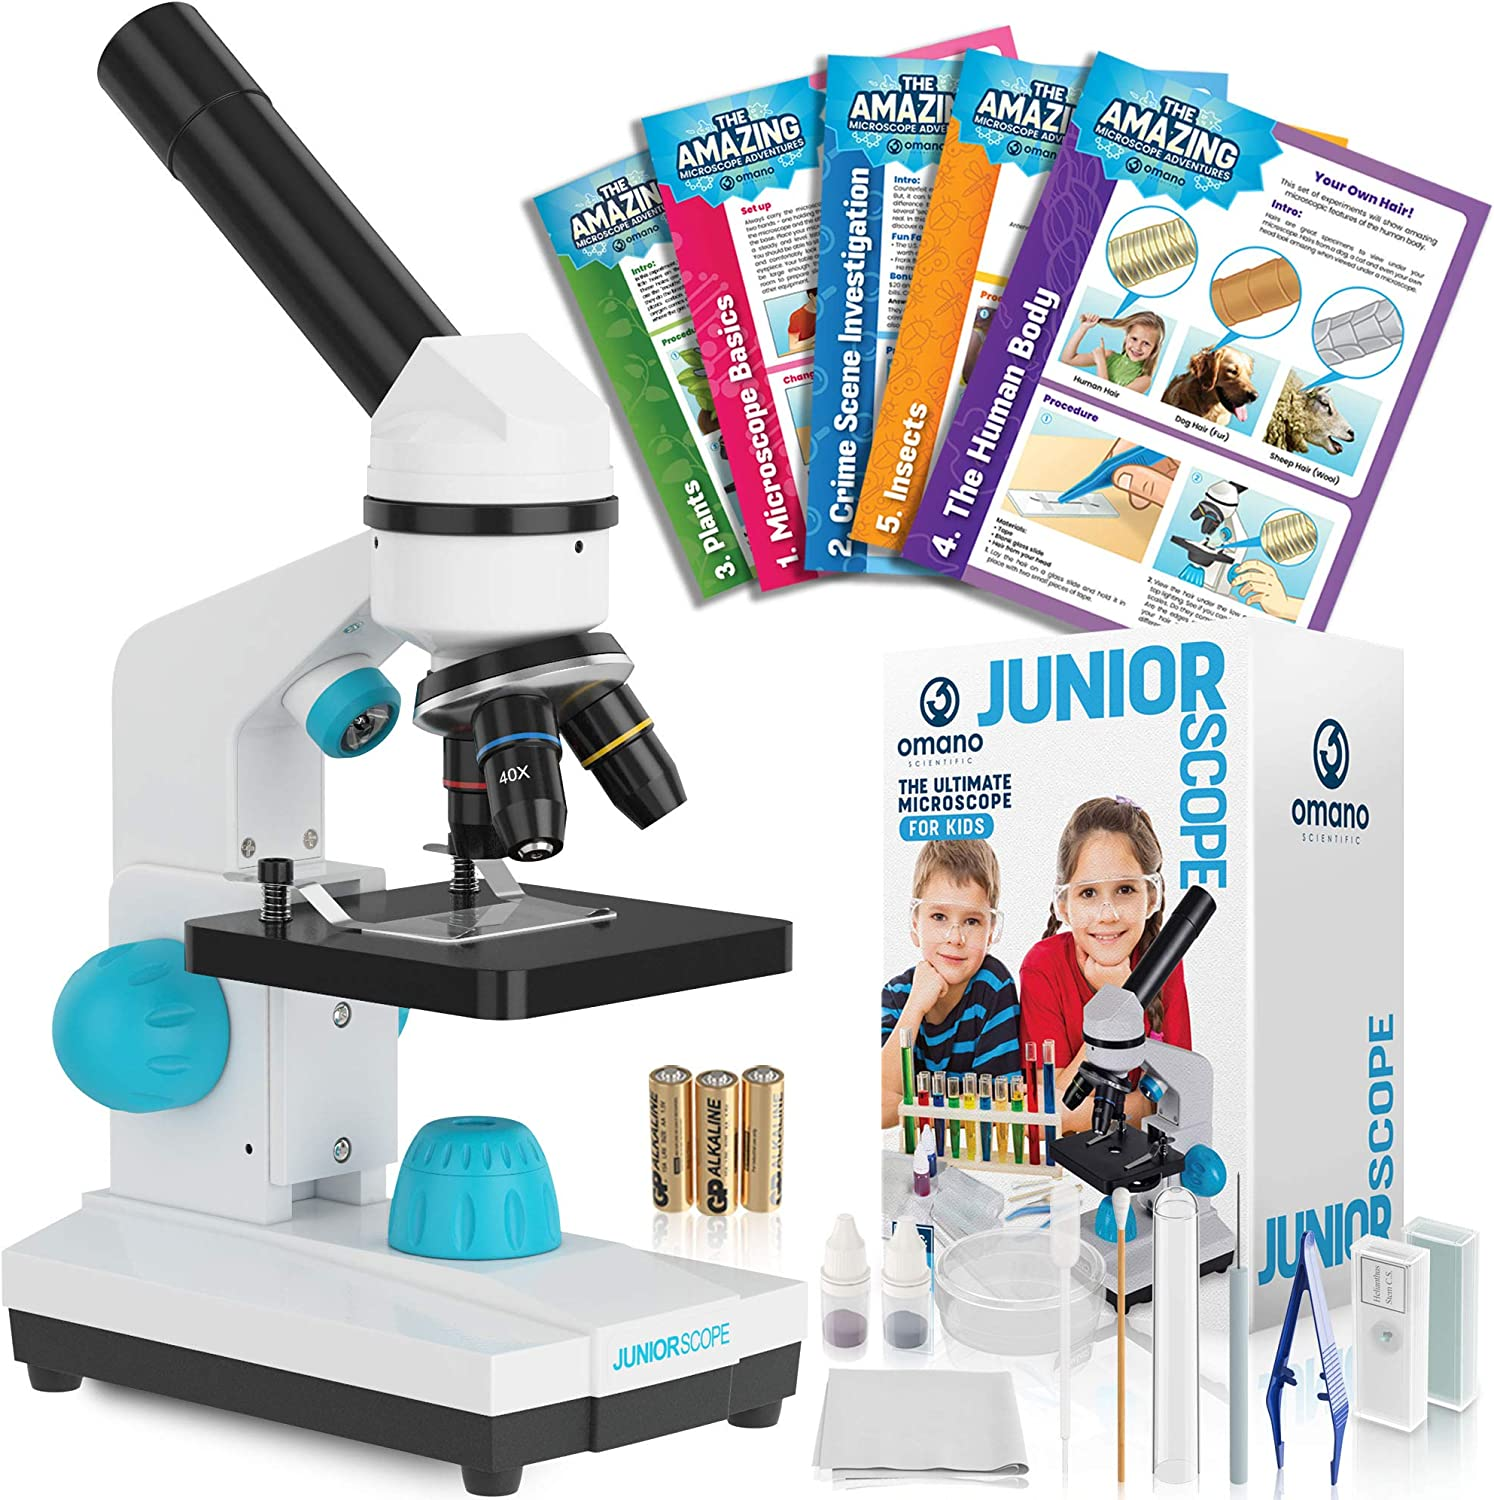 Top 10 Best Microscope For Kids Getting Into Science (2020) 3